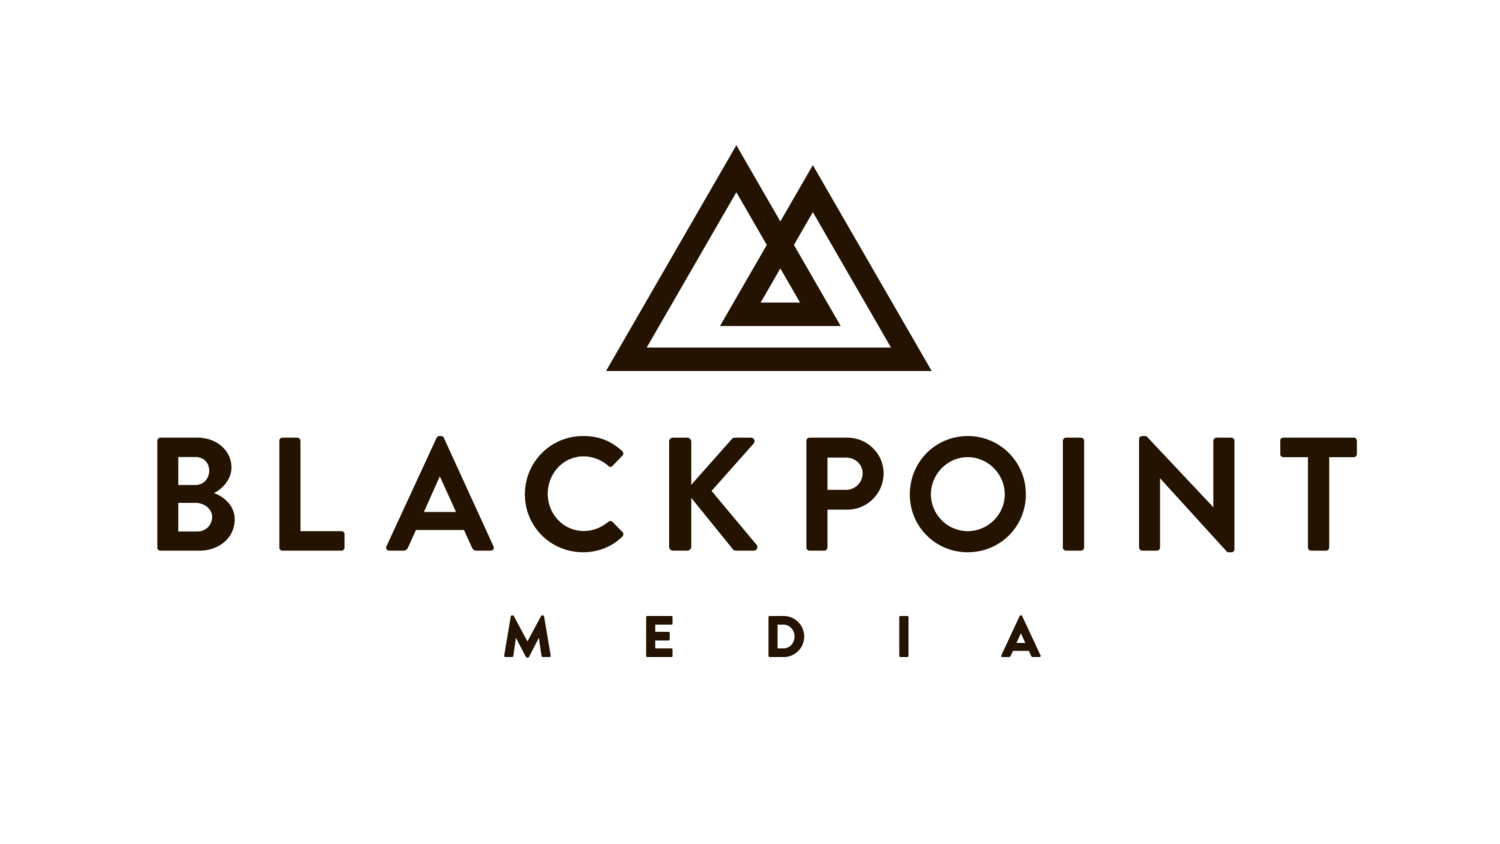 Blackpoint Media